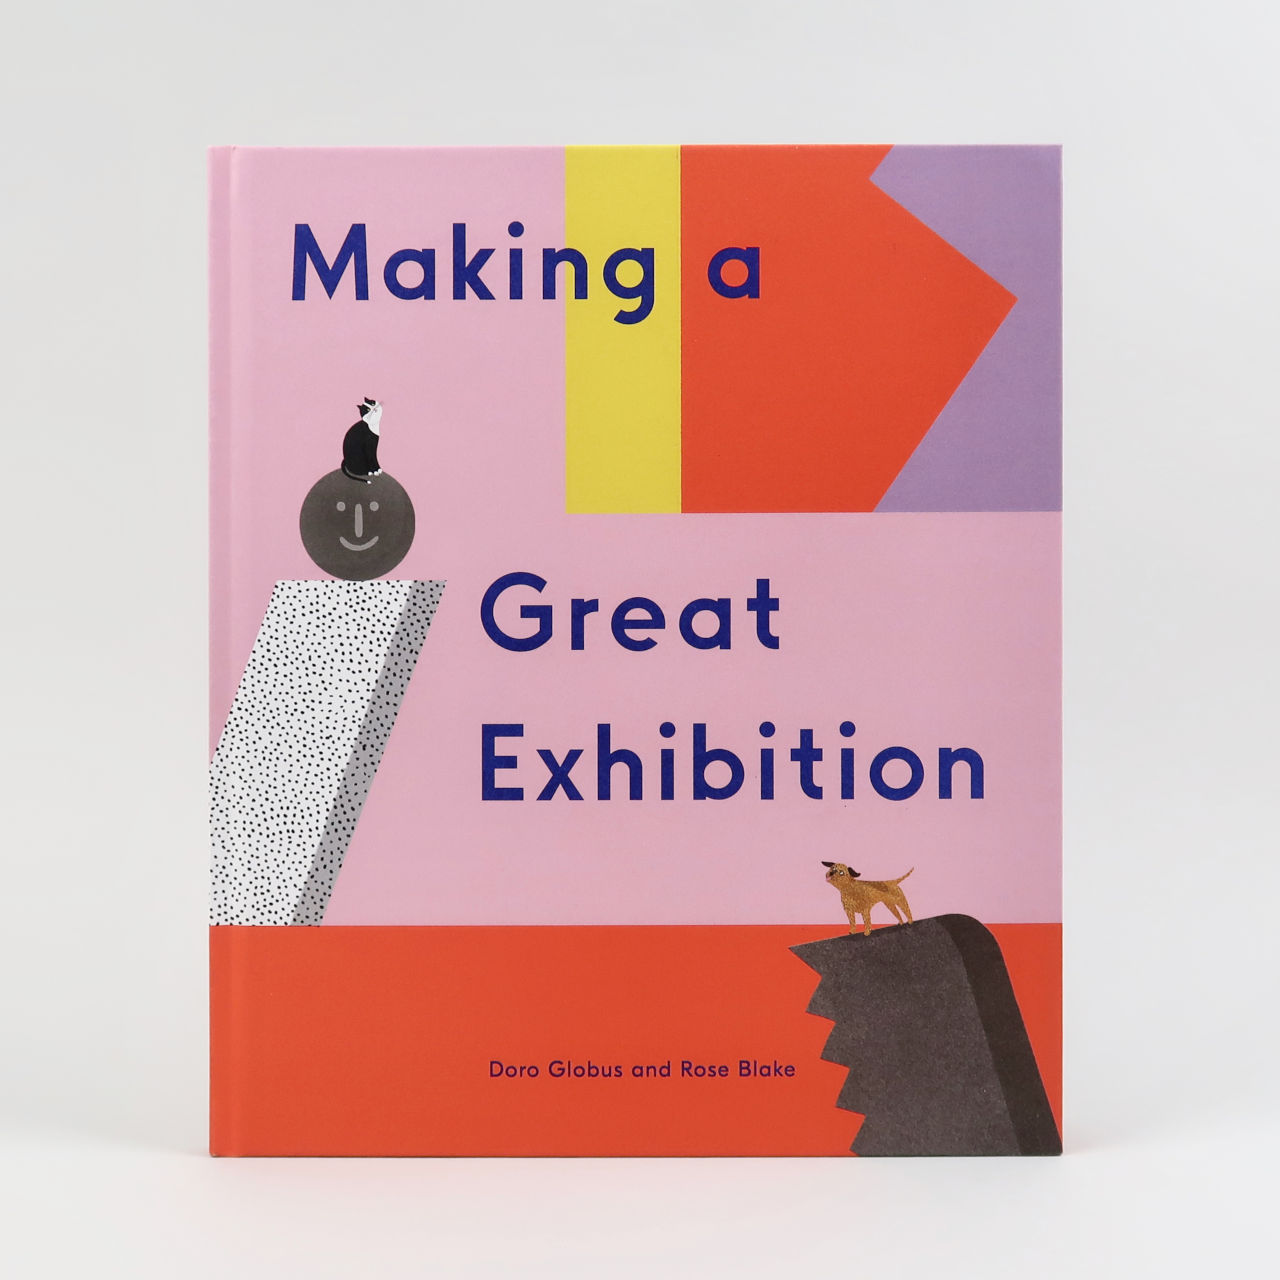 Making a Great Exhibition - Doro Globus and Rose Blake